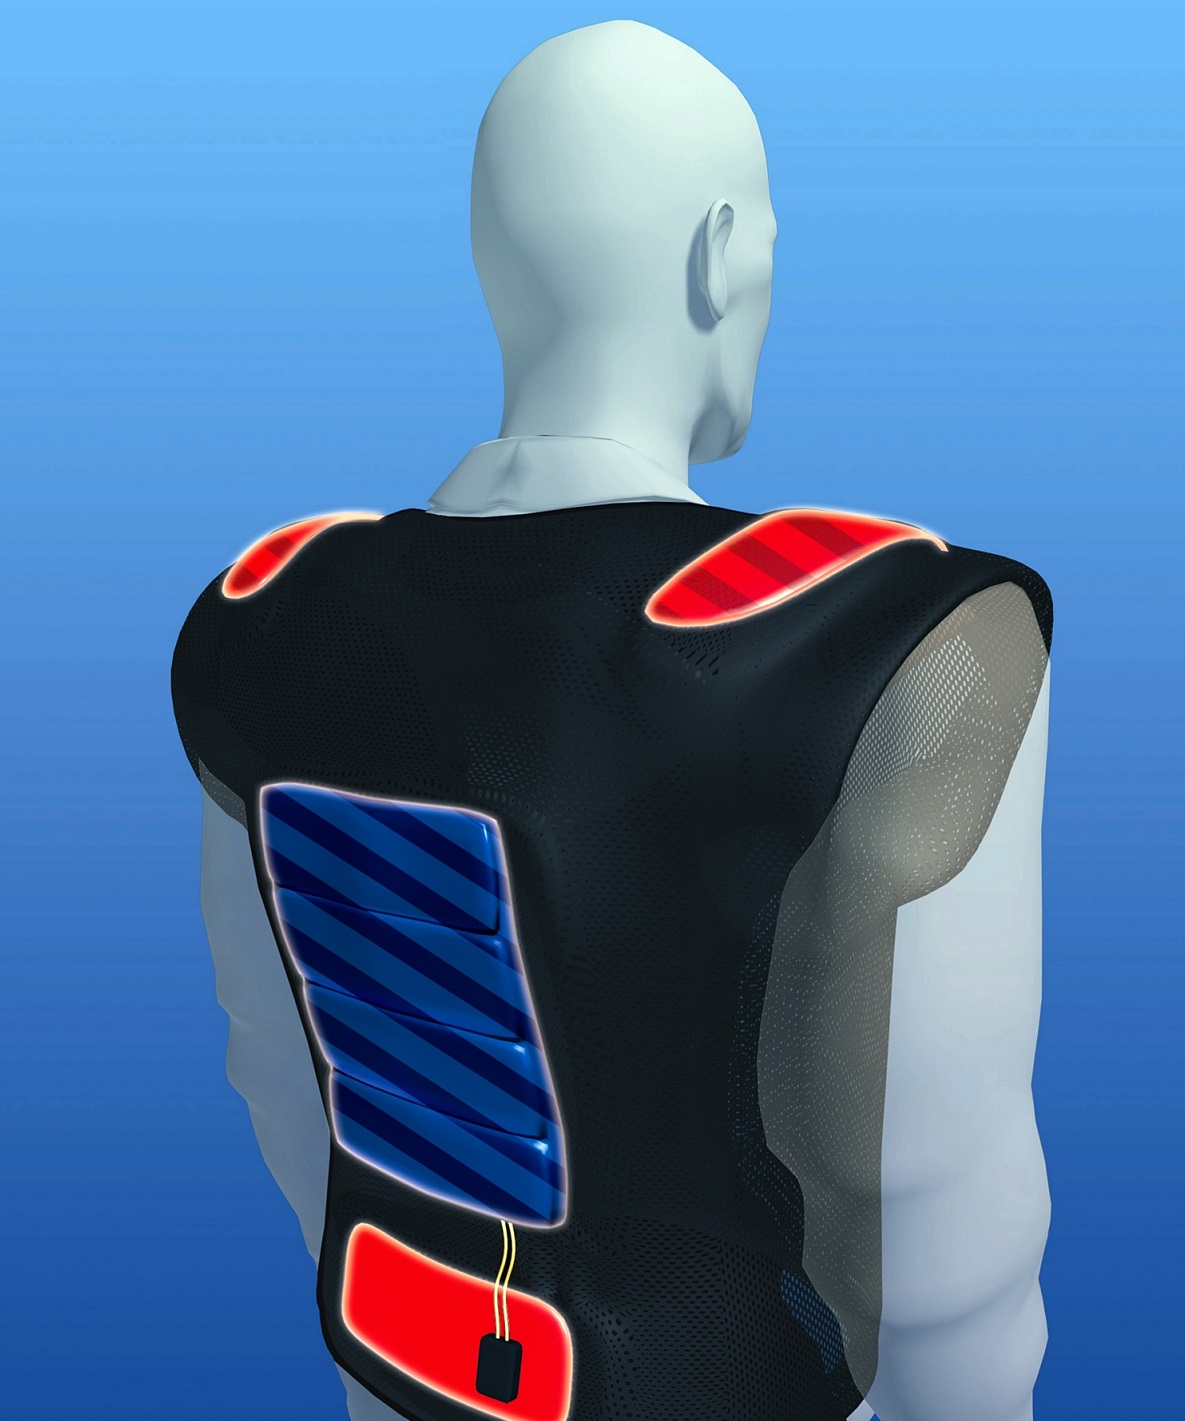 Smart clothes that monitor human movement in the offing